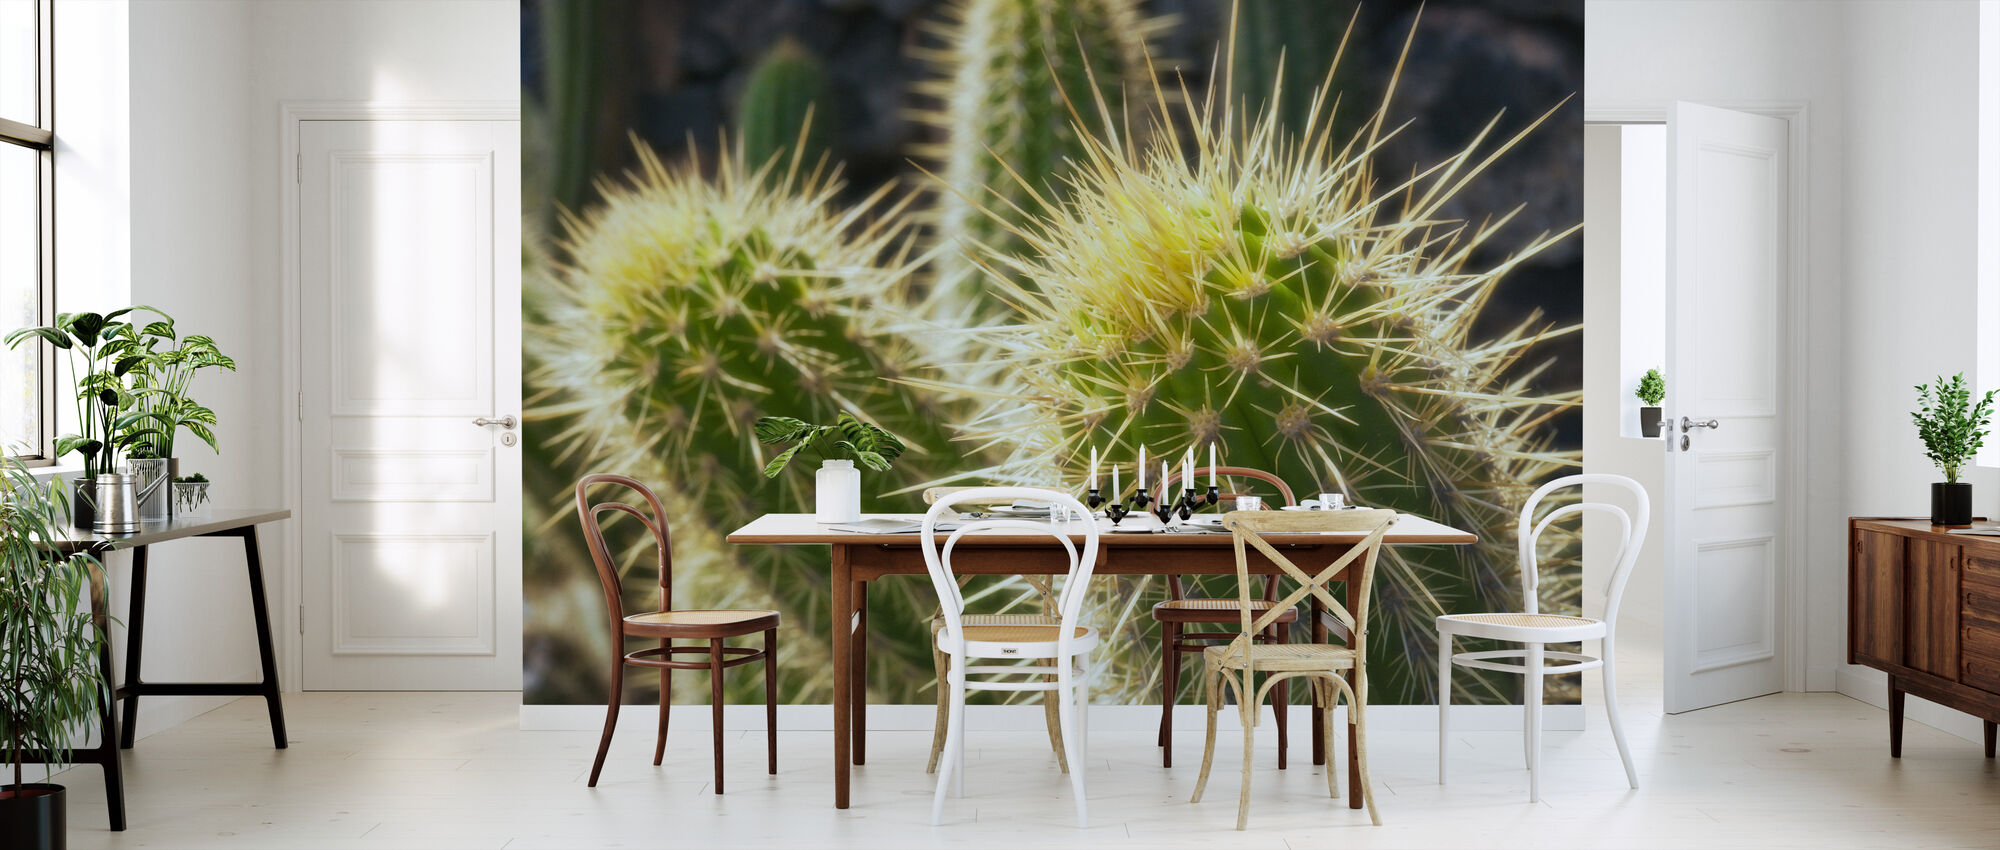 Golden Barrel Cactus - Wallpaper - Kitchen